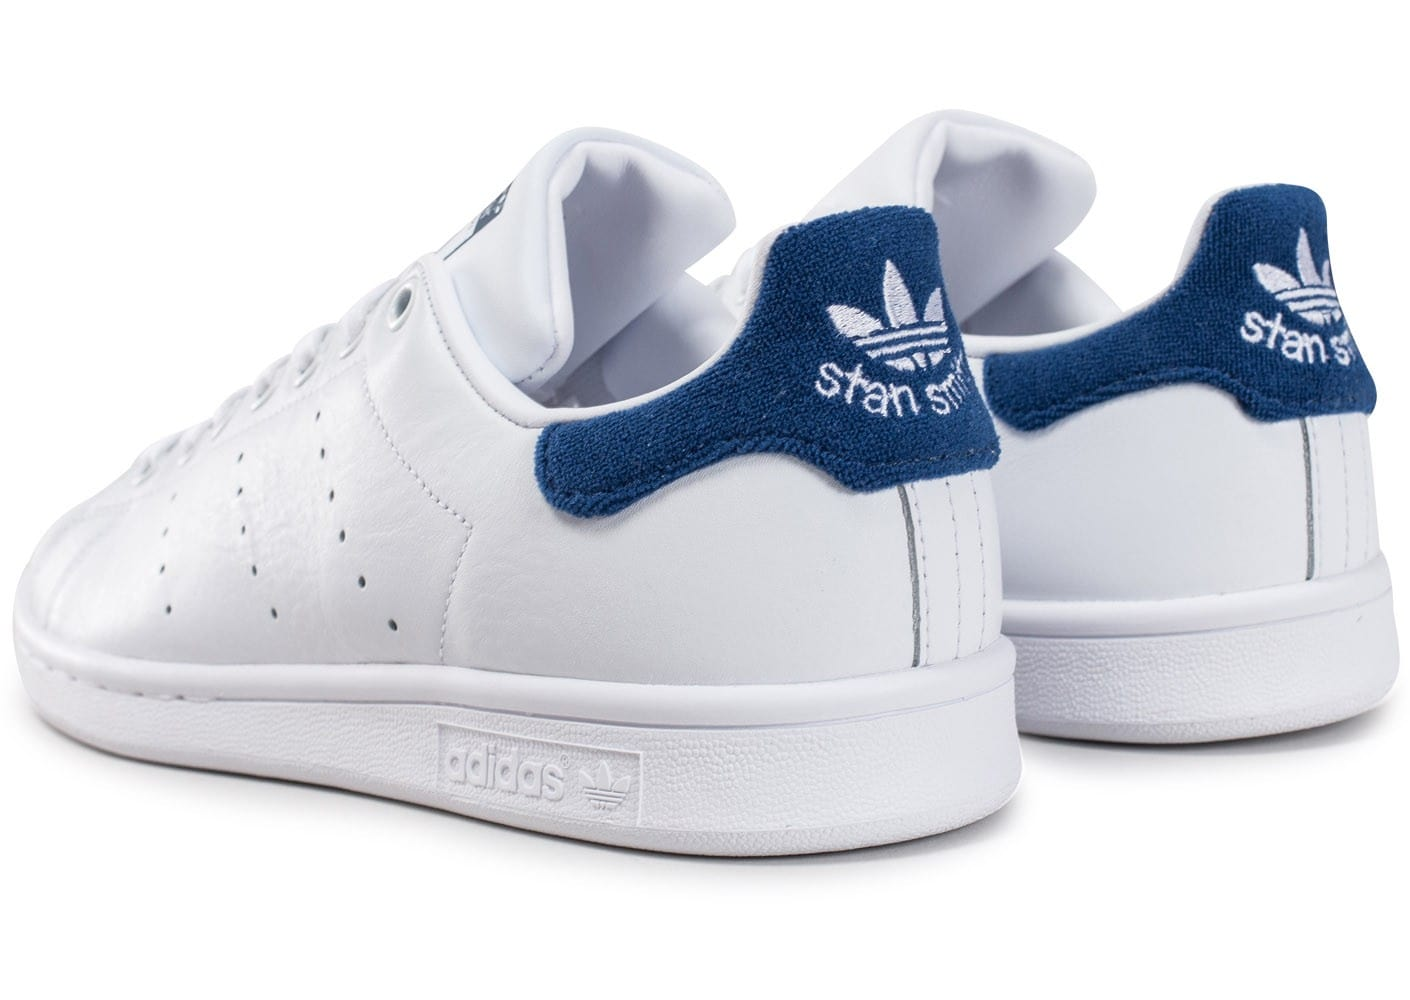 quality design 0ef5a dee06 ... czech à la mode adidas stan smith m20325 blanc bleu marine basket adidas  originals basket mixte